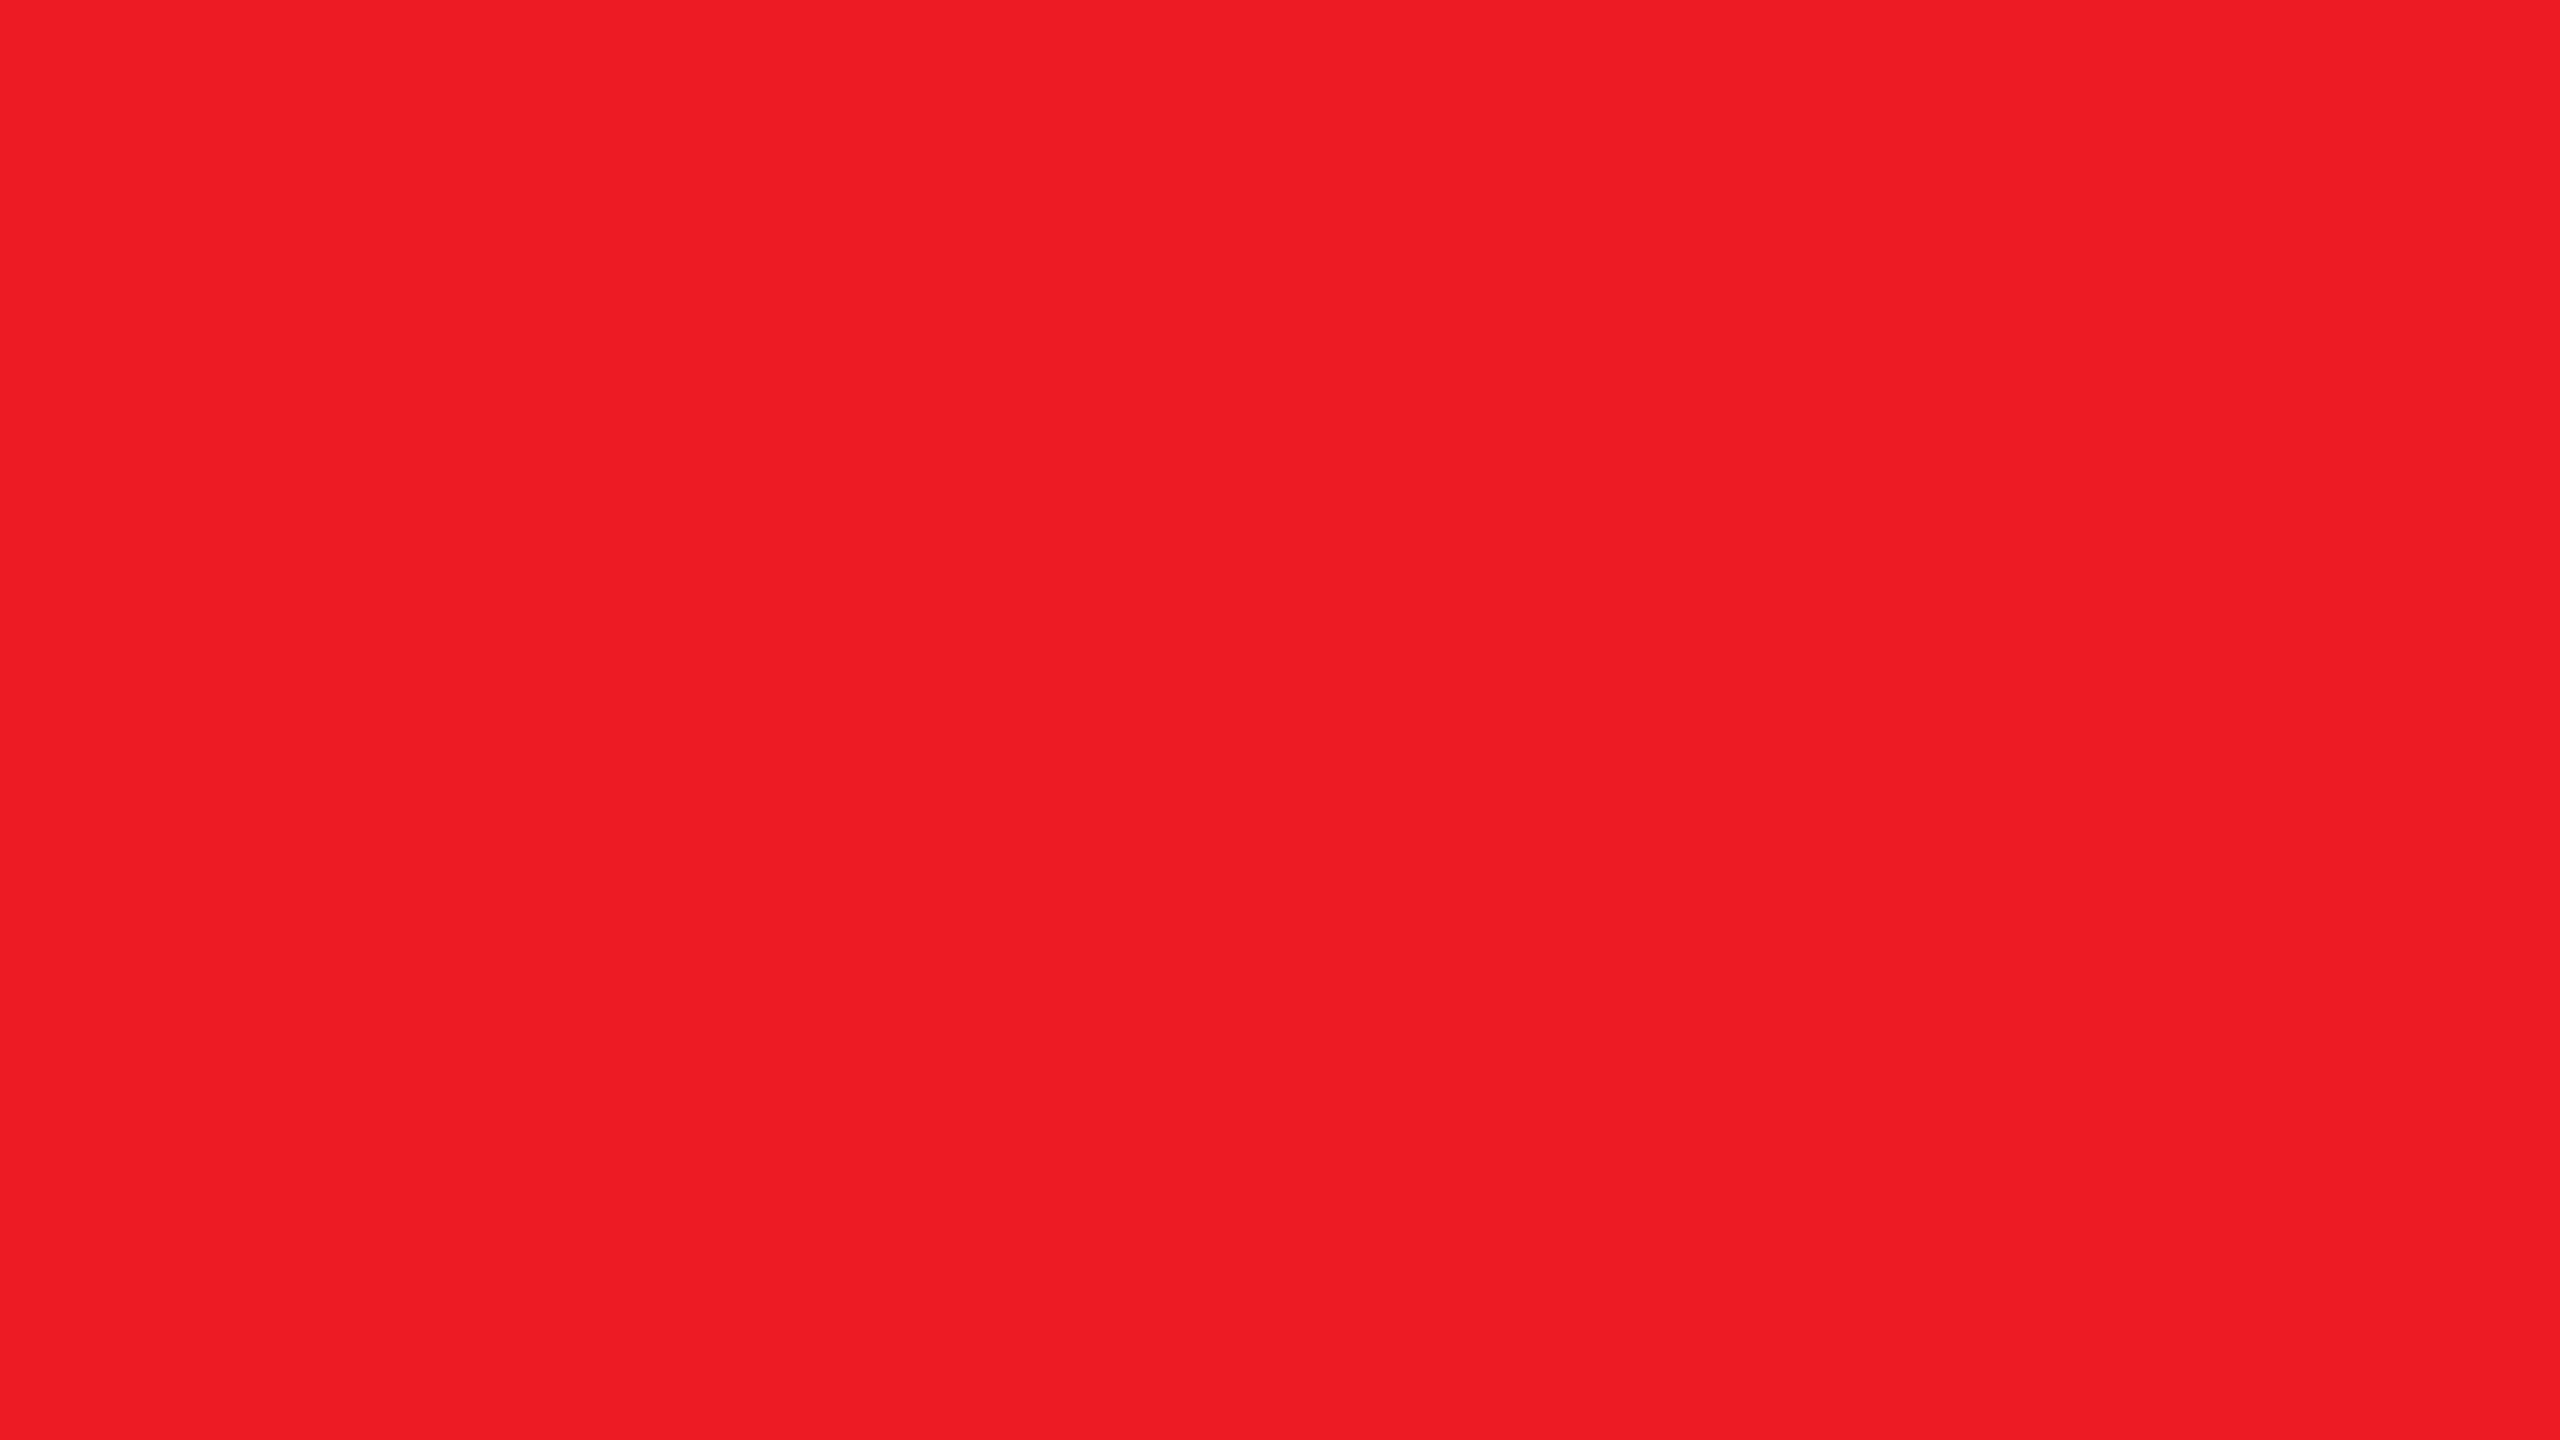 2560x1440 Red Pigment Solid Color Background